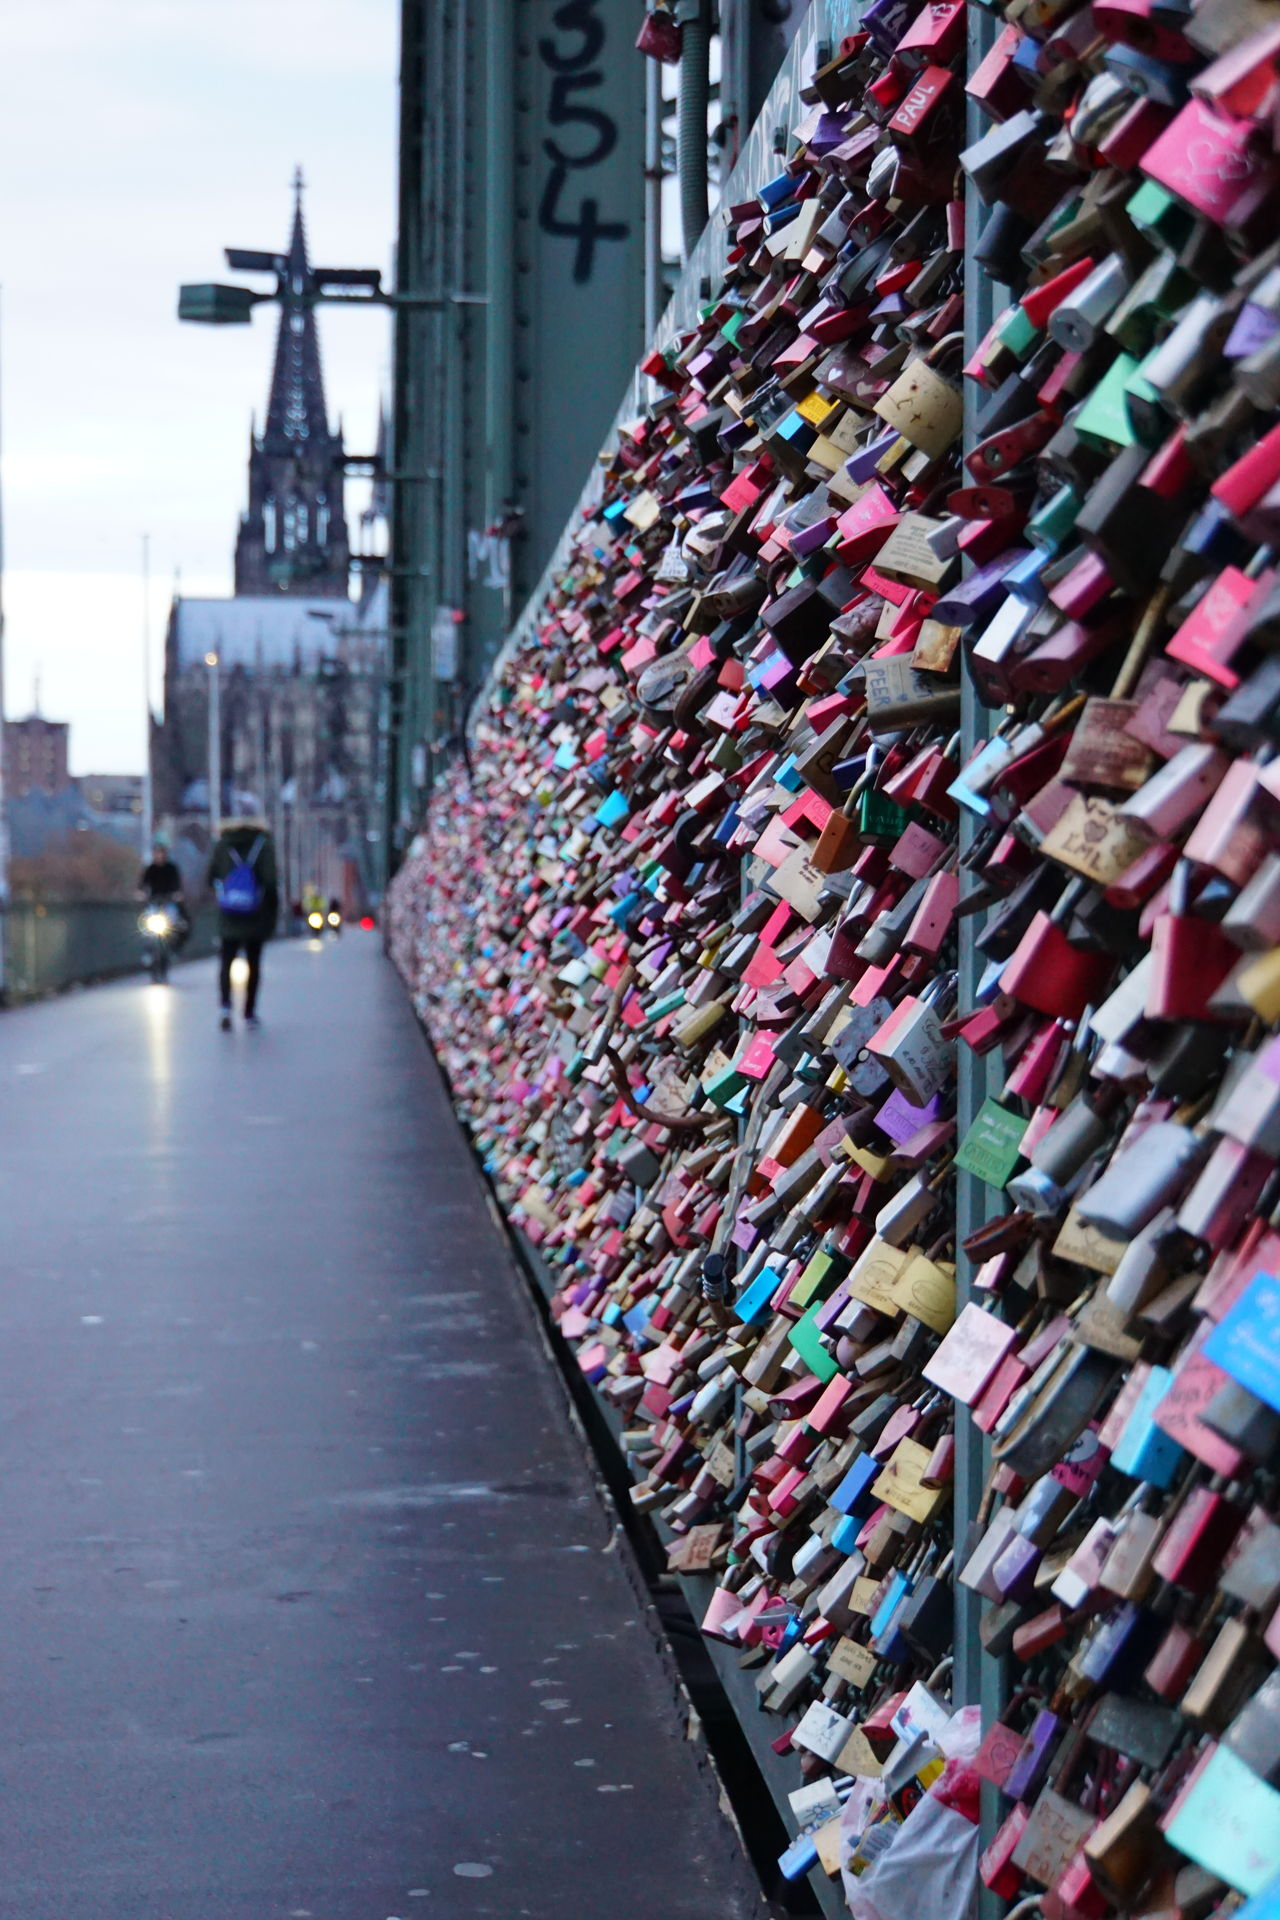 Architecture Bridge - Man Made Structure Built Structure City Day Large Group Of Objects Lock Love Lock Outdoors Padlock People Real People Sky The Way Forward Transportation